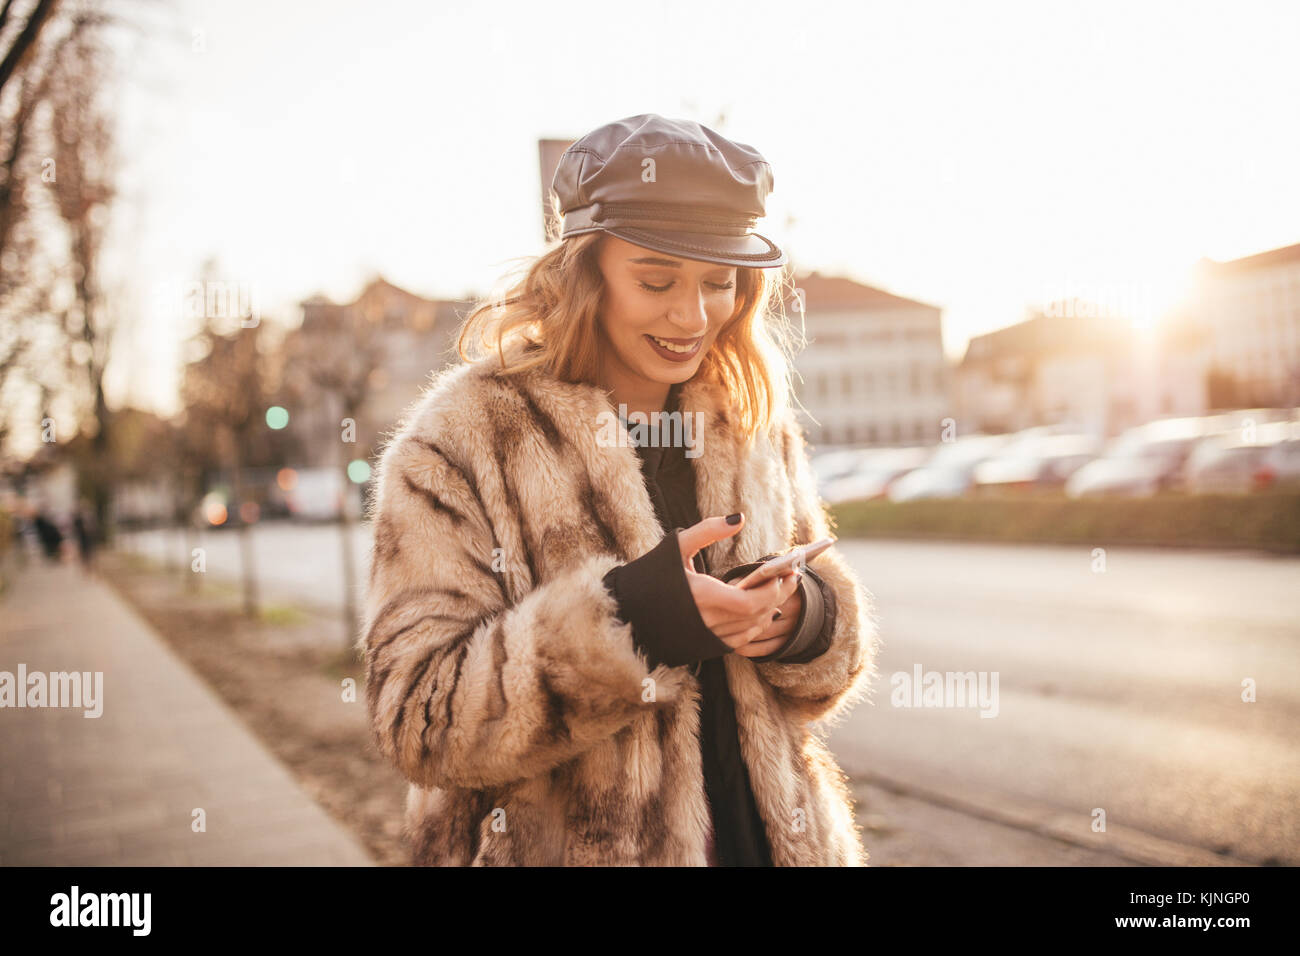 Beautiful girl smiling and texting on her cell phone on city streets - Stock Image